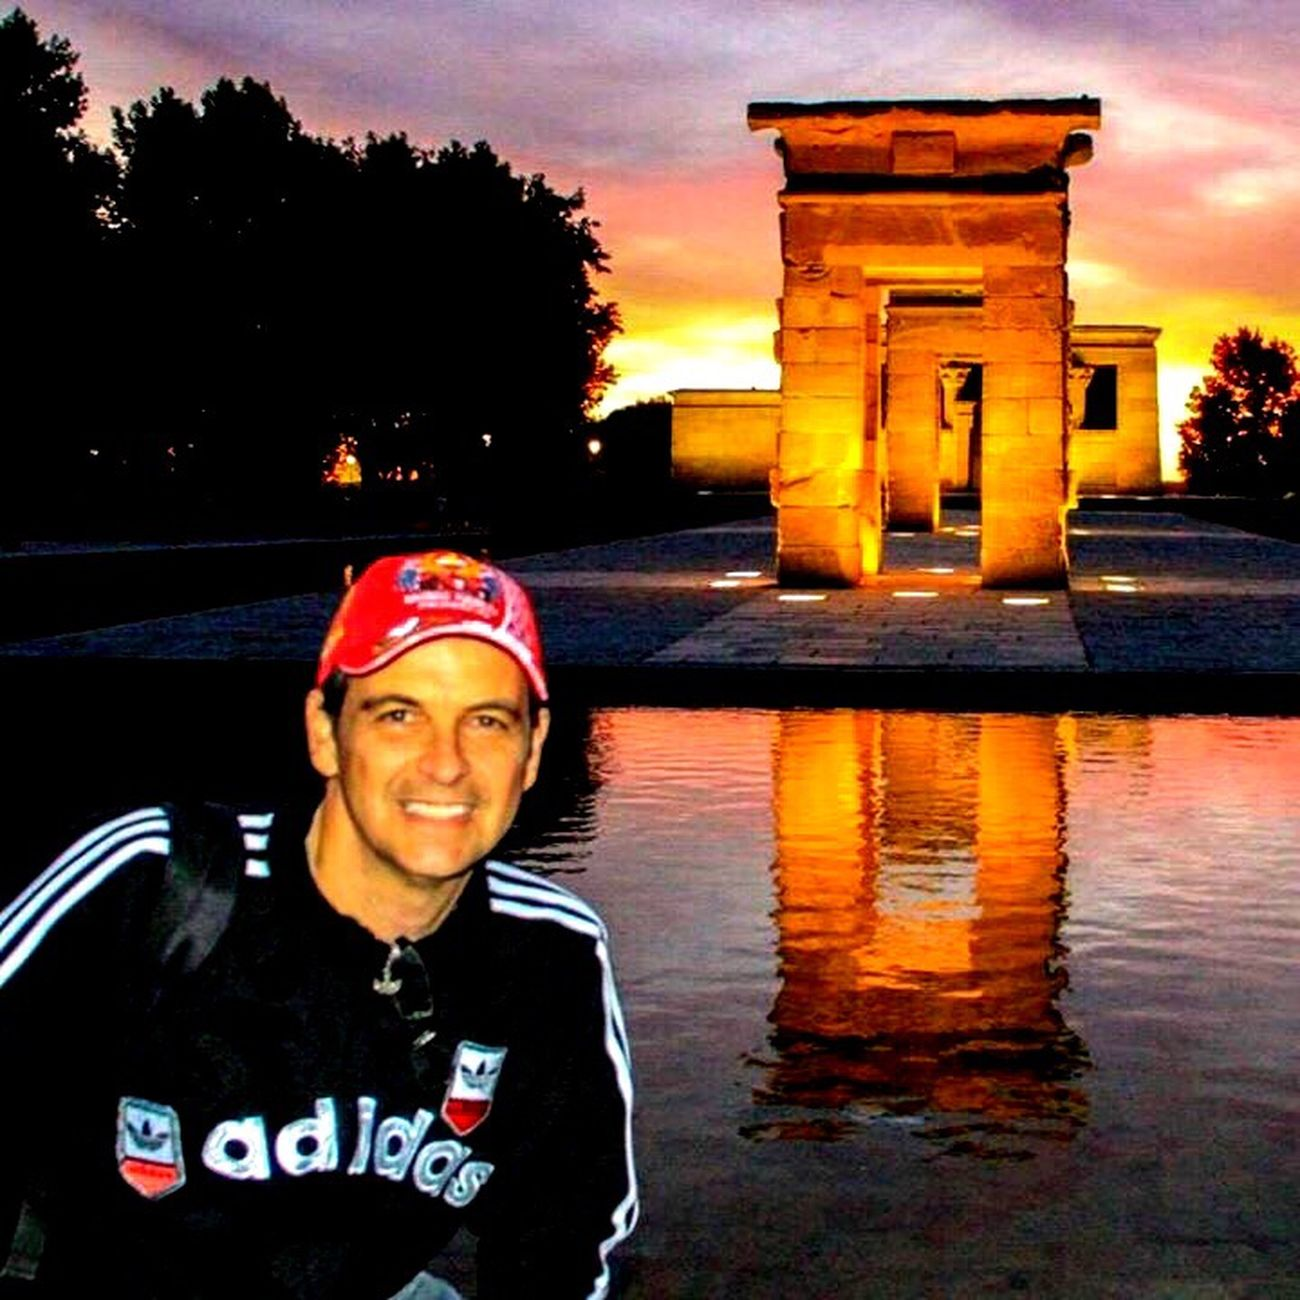 Templo De Debod Madrid Madrid Spain Trip Myself Beautifulplace Energy Romantic Place Portrait Sunset Front View Water Architecture Sky ExploreEverything Fantastic View